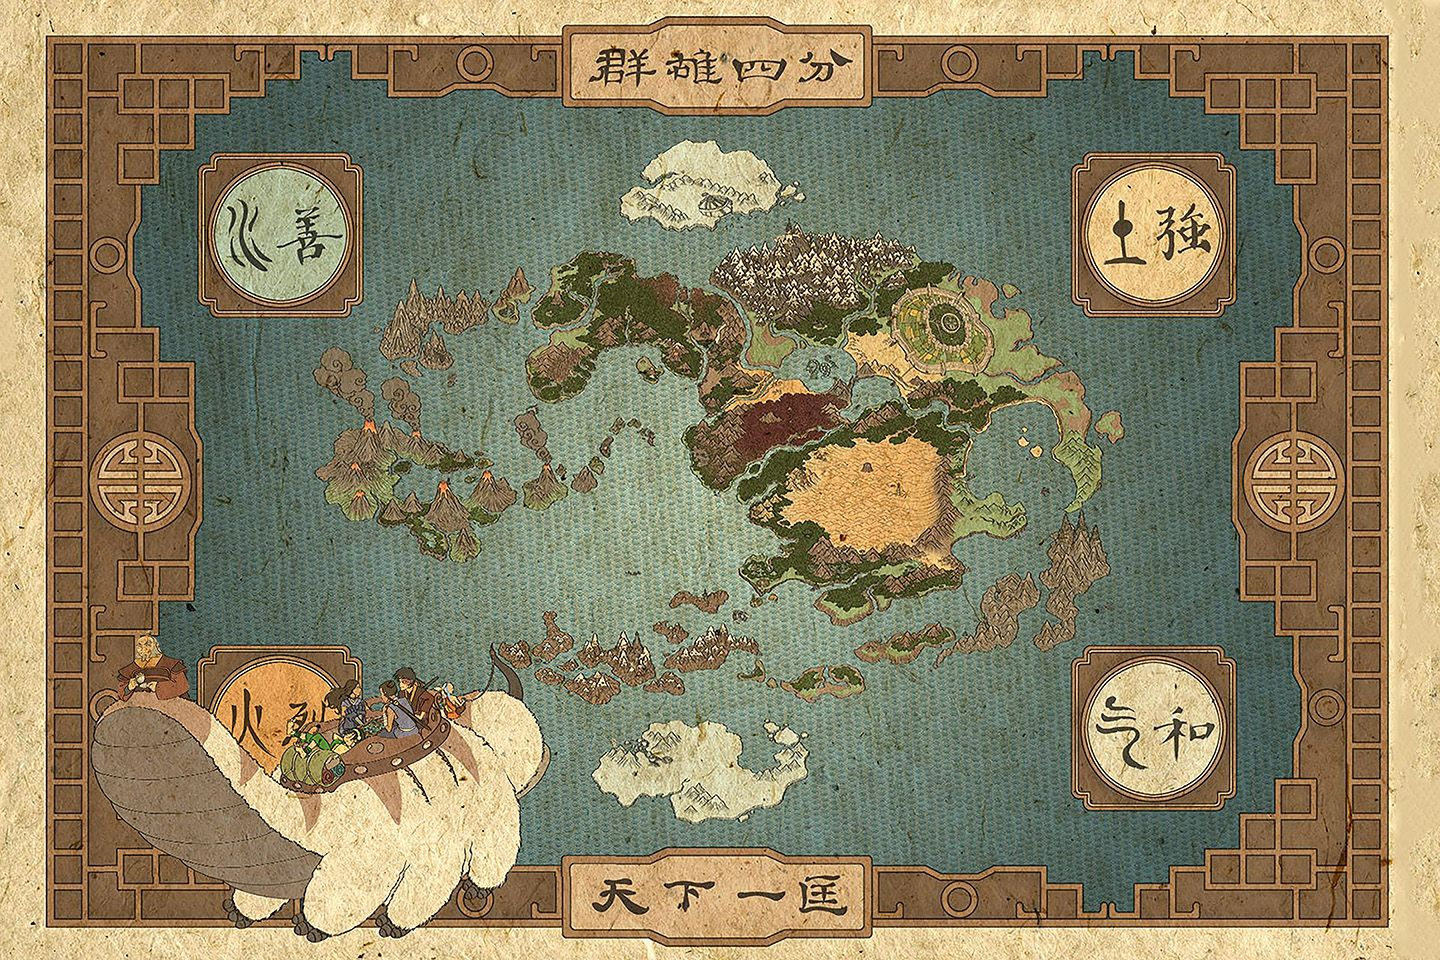 Avatar The Last Airbender Map Avatar The Legend Of Aang Etsy In 2021 Avatar Poster Avatar World Avatar The Last Airbender